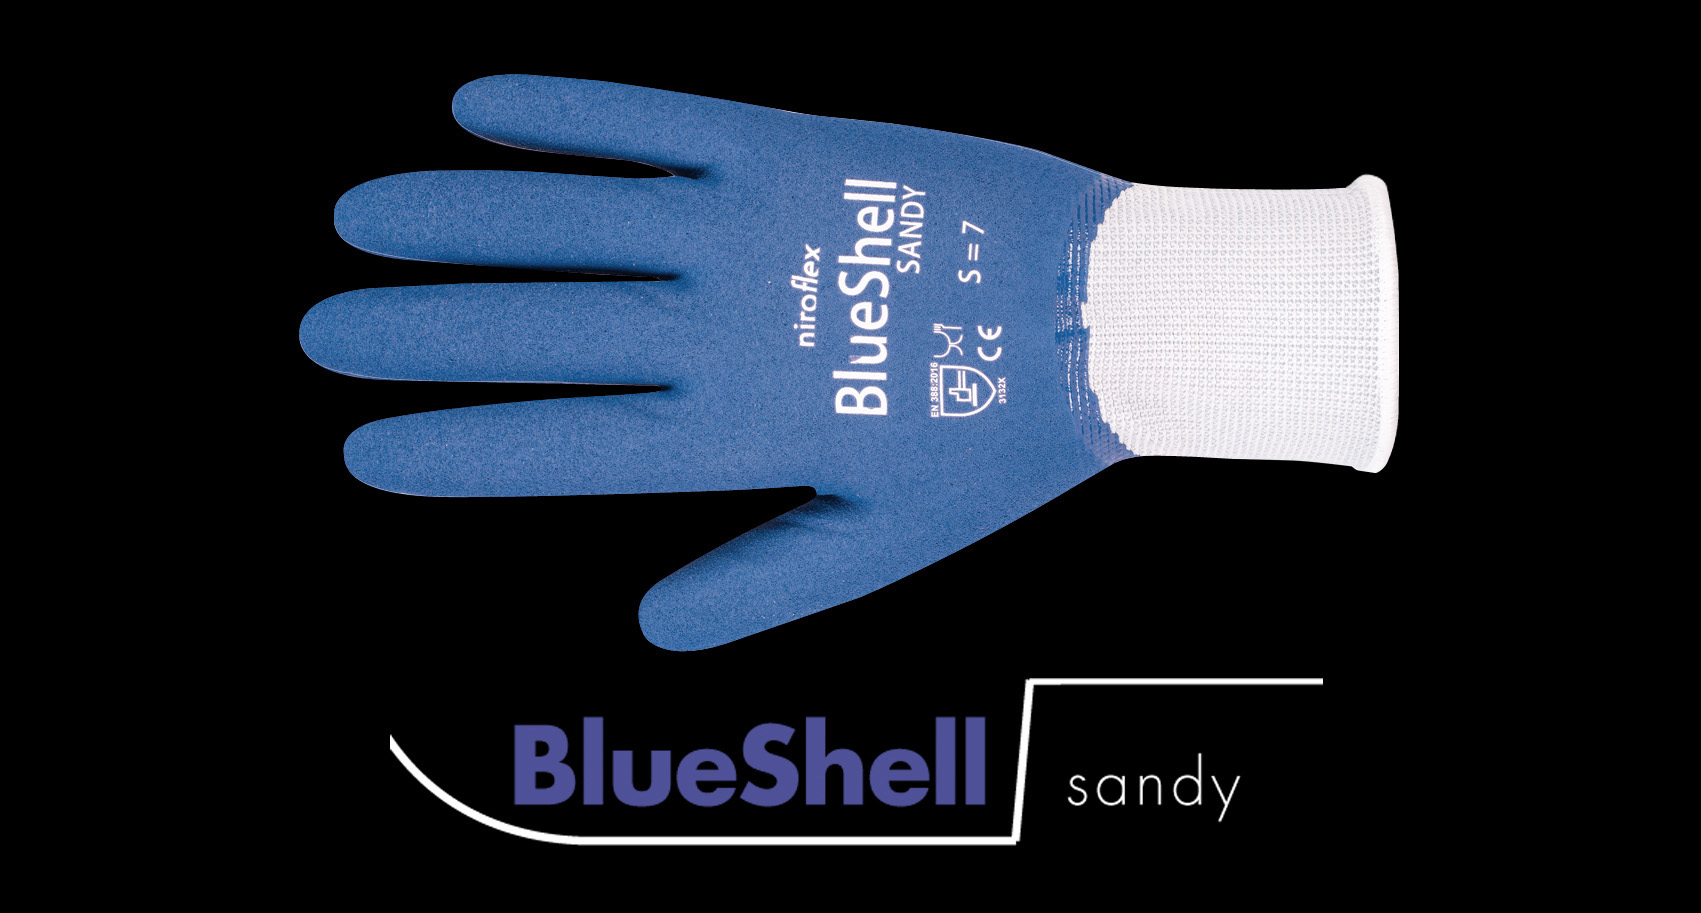 BlueShell sandy